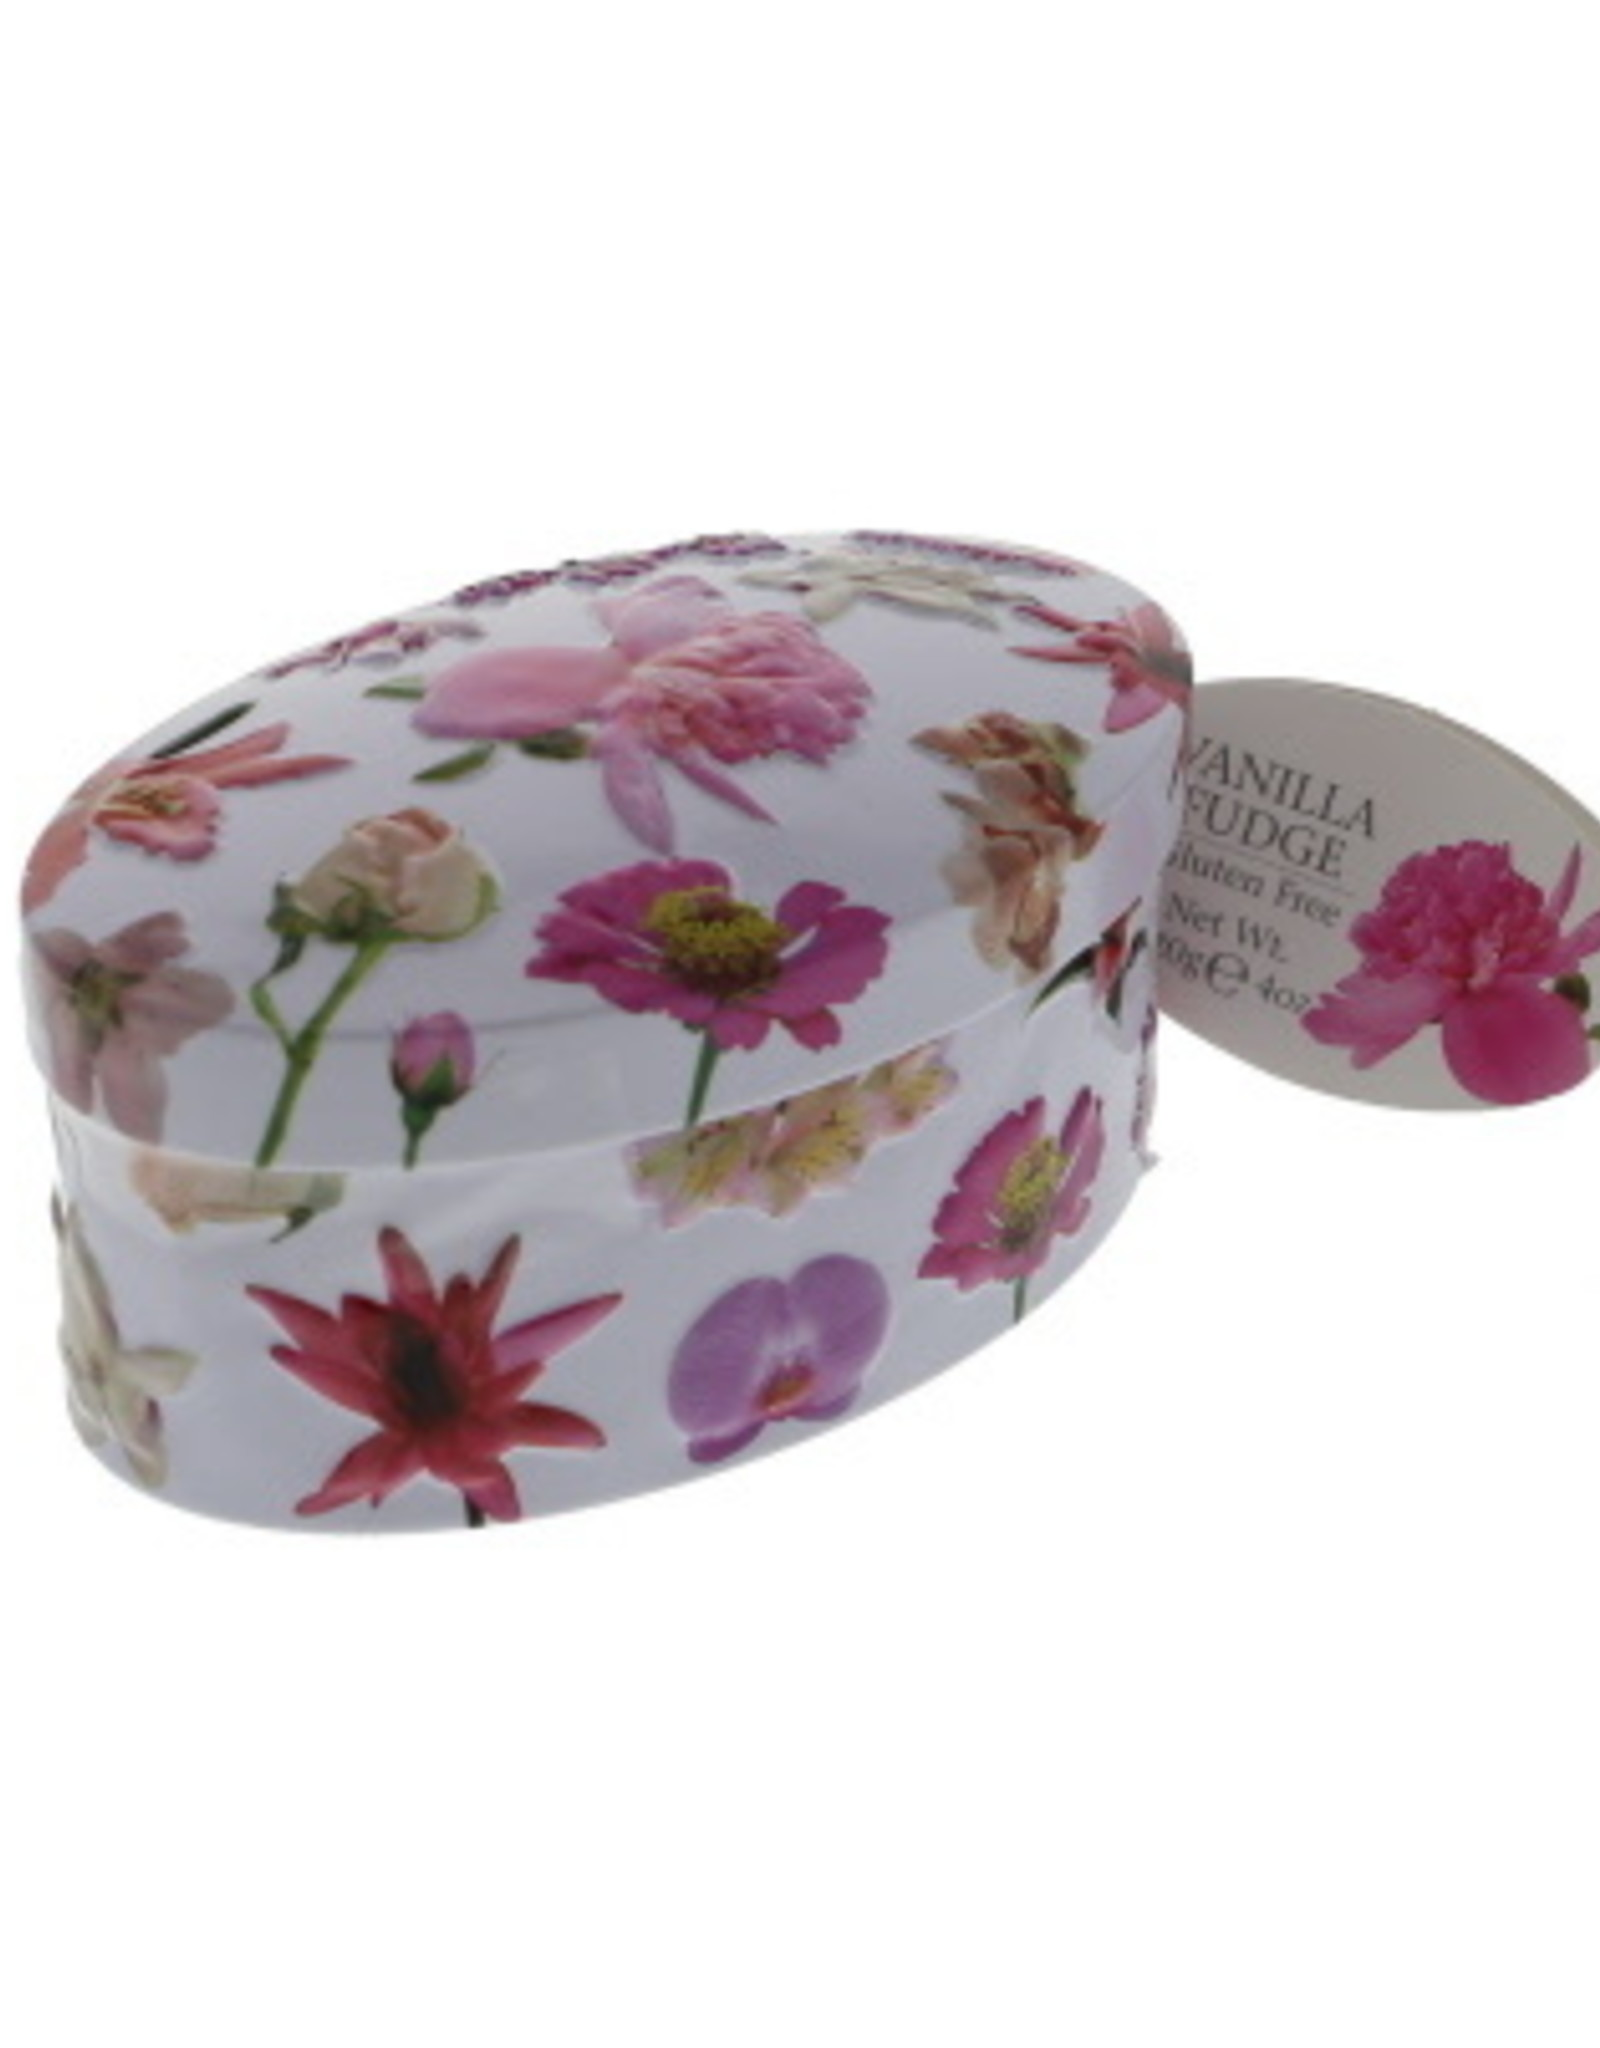 Gardiners fudge Red flower tin vanilla fudge